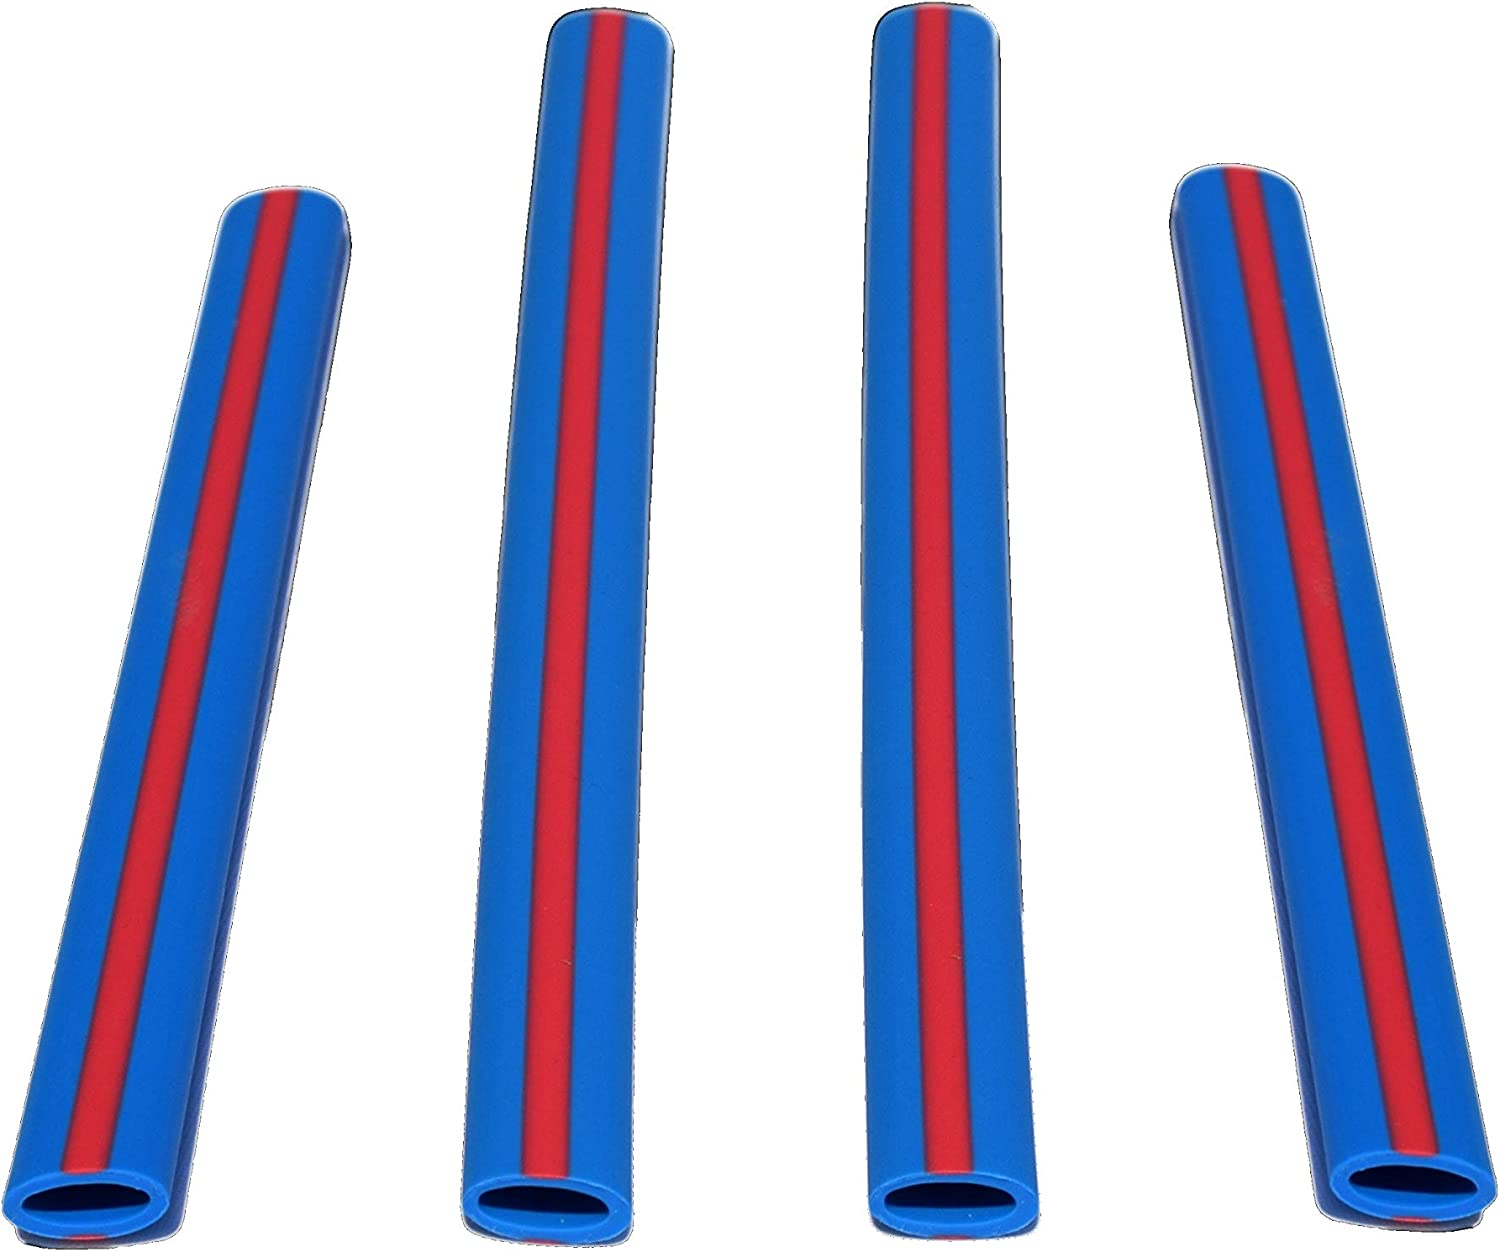 HotSips Reusable Straws 2 Small + 2 Med with Travel Case, Navy w/Red Stripe Reusable ECO Friendly Straws For Both Cold & Hot Beverages - 8oz - 16oz - Non Toxic BPA Free FDA Grade material Recyclable